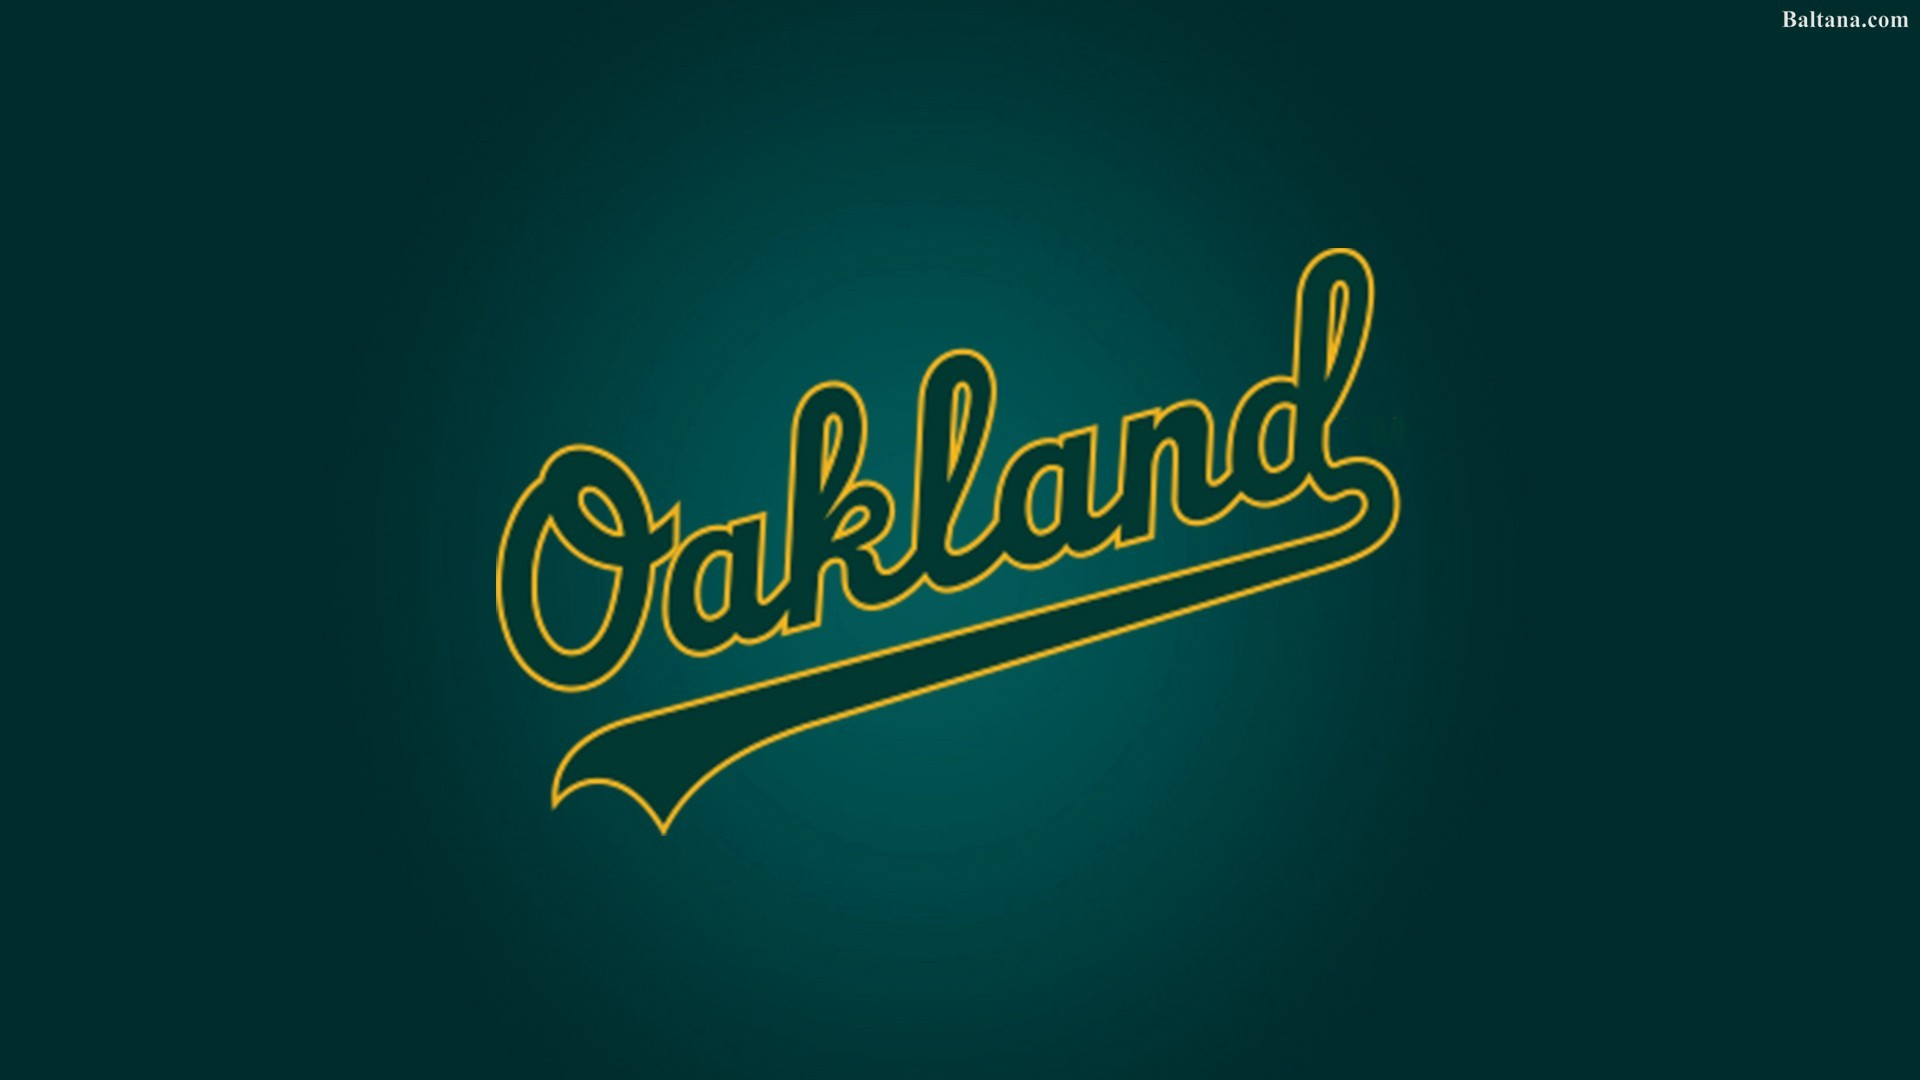 Oakland Athletics HD Desktop Wallpaper 33235   Baltana 1920x1080